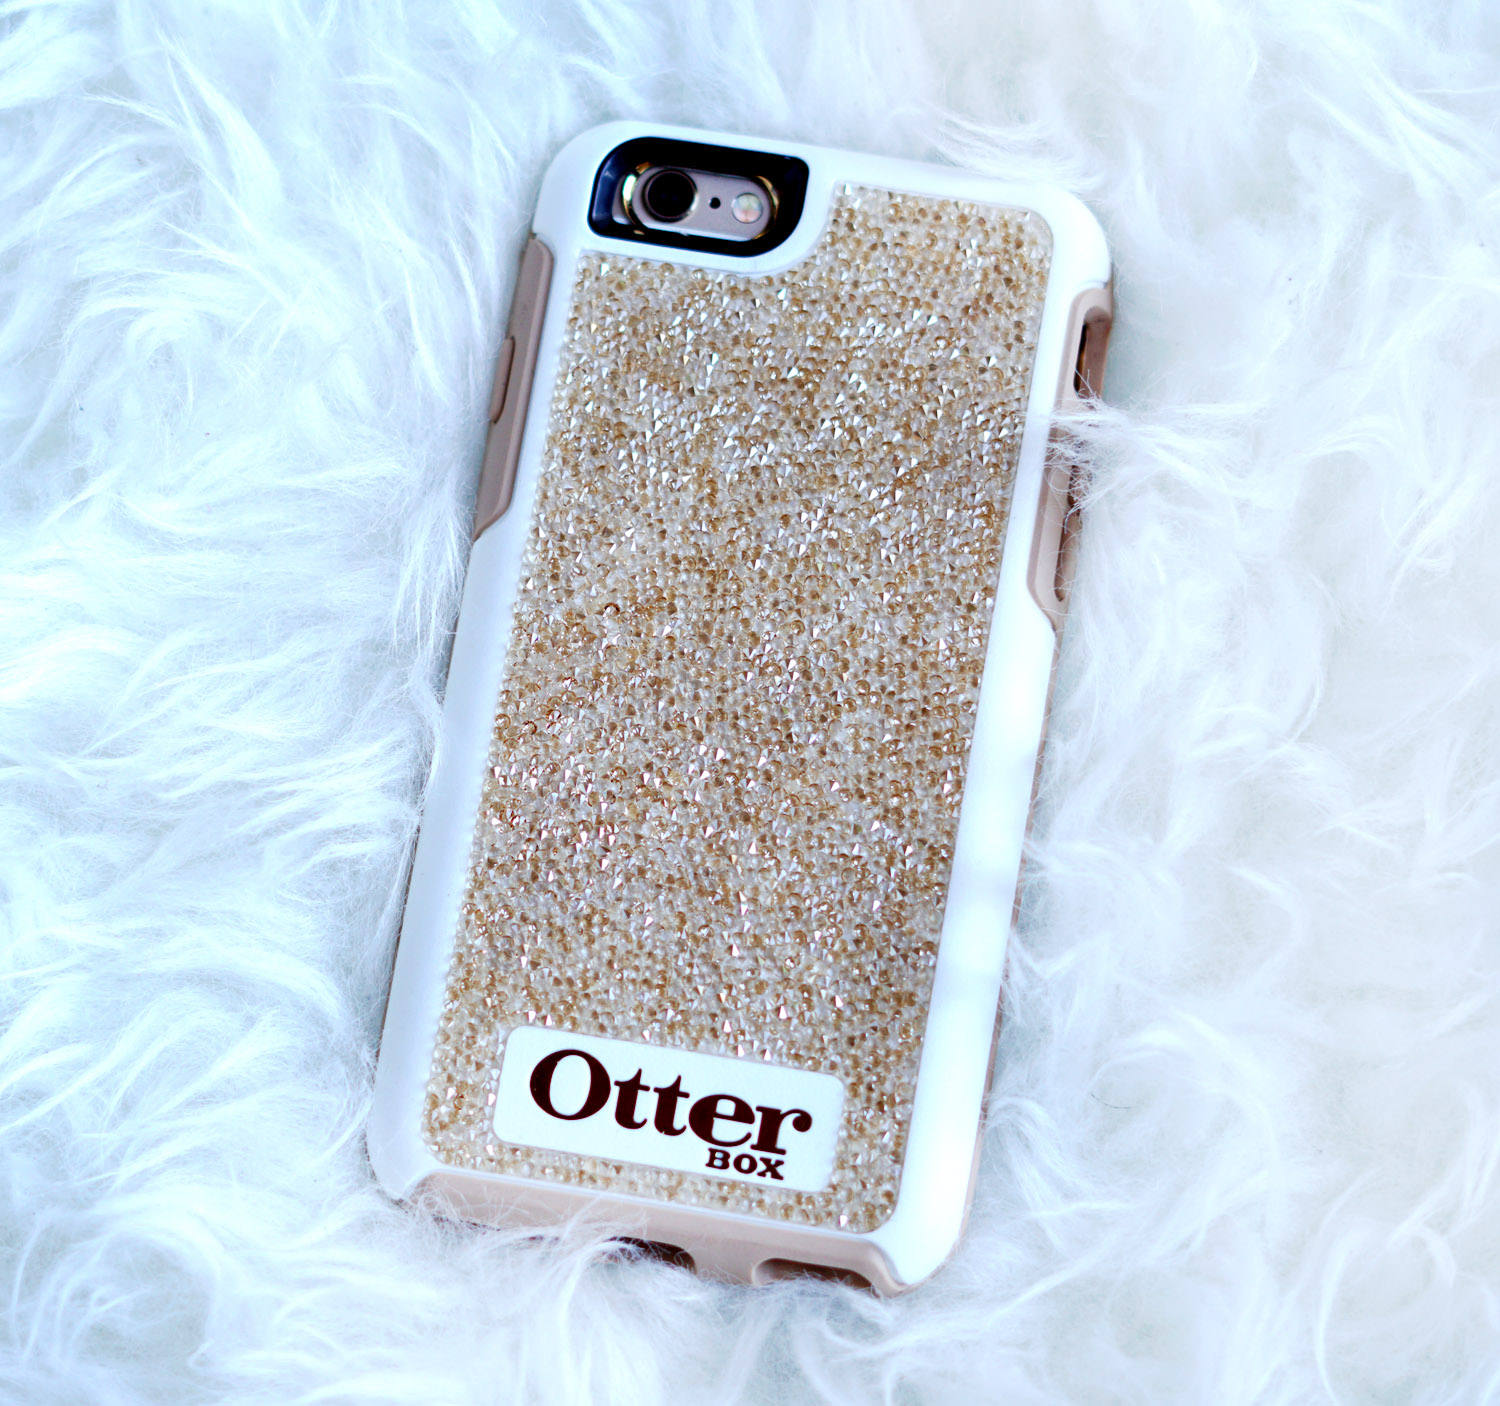 otterbox-phone-case